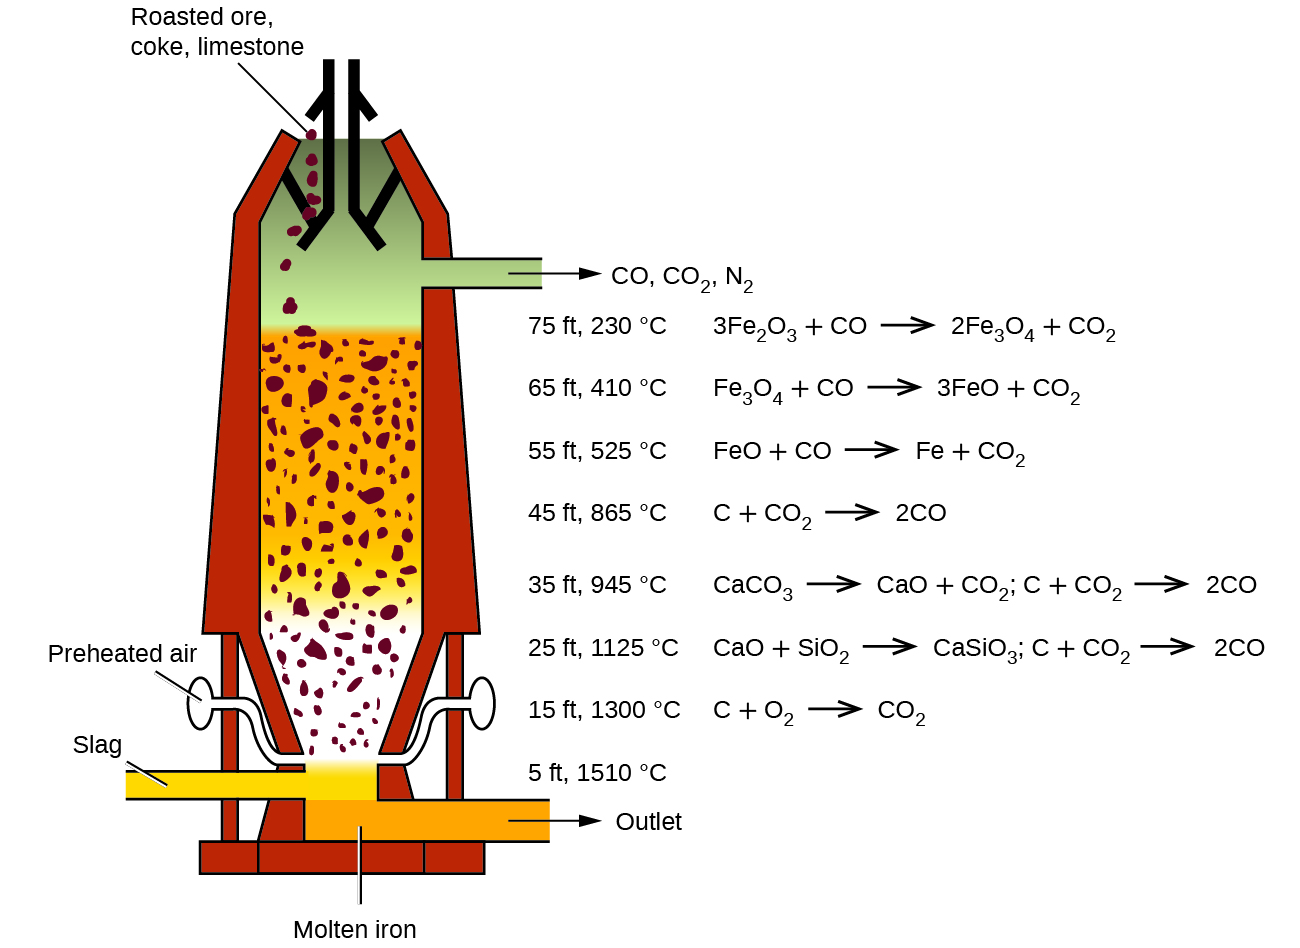 "A diagram of a blast furnace is shown. The furnace has a cylindrical shape that is oriented vertically. A pipe at the lower left side of the figure is shaded yellow and is labeled ""Slag."" It connects to an interior chamber. Situated at a level just below this piping on the right side of the figure is another pipe that is shaded orange. It opens at the lower right side of the figure. The orange-shaded substance at the bottom of the chamber that matches the contents of the pipe to its right is labeled ""Molten iron."" The pipe has an arrow exiting to the right pointing to the label ""Outlet."" Just above the slag and molten iron regions is narrower tubing on both the left and right sides of the chamber which lead slightly up and out from the central chamber to small oval shapes. These shapes are labeled, ""Preheated air."" The region just above the points of entry of these two pipes or tubes into the chamber is a white region in which small rust-colored chunks of material appear suspended. This region tapers slightly to the bottom of the furnace. The region above has an orange background in which small rust-colored chunks are similarly suspended. This region fills nearly half of the interior of the furnace. Above this region is a grey shaded region. At the very top of the furnace, black line segments indicate directed openings through which small rust-colored chunks of material appear to be entering the furnace from the top. This material is labeled, ""Roasted ore, coke, limestone."" Exiting the grey shaded interior region to the right is a pipe. An arrow points right exiting the pipe pointing to the label ""C O, C O subscript 2, N subscript 2."" At the right side of the figure, furnace heights are labeled in order of increasing height between the outlet pipes, followed by temperatures and associated chemical reactions. Just above the pipe labeled, ""Outlet,"" no chemical equation appears right of, ""5 f t, 1510 degrees C."" To the right of, ""15 f t, 1300 degrees C,"" is the equation, ""C plus O subscript 2 right pointing arrow C O subscript 2."" To the right of, ""25 f t, 1125 degrees C,"" are the two equations, ""C a O plus S i O subscript 2 right pointing arrow C a S i O subscript 3"" and ""C plus C O subscript 2 right pointing arrow 2 C O."" To the right of, ""35 f t, 945 degrees C,"" are the two equations, ""C a C O subscript 3 right pointing arrow C a O plus C O subscript 2,"" and, ""C plus C O subscript 2 right pointing arrow 2 C O."" To the right of, ""45 f t, 865 degrees C,"" is the equation, ""C plus C O subscript 2 right pointing arrow 2 C O."" To the right of, ""55 f t, 525 degrees C,"" is the equation ""F e O plus C O right pointing arrow F e plus C O subscript 2."" To the right of, ""65 f t, 410 degrees C,"" is the equation, ""F e subscript 3 O subscript 4 plus C O right pointing arrow 3 F e O plus C O subscript 2."" To the right of ""75 f t, 230 degrees C,"" is the equation, ""3 F e subscript 2 O subscript 3 plus C O right pointing arrow 2 F e subscript 3 O subscript 4 plus C O subscript 2."""